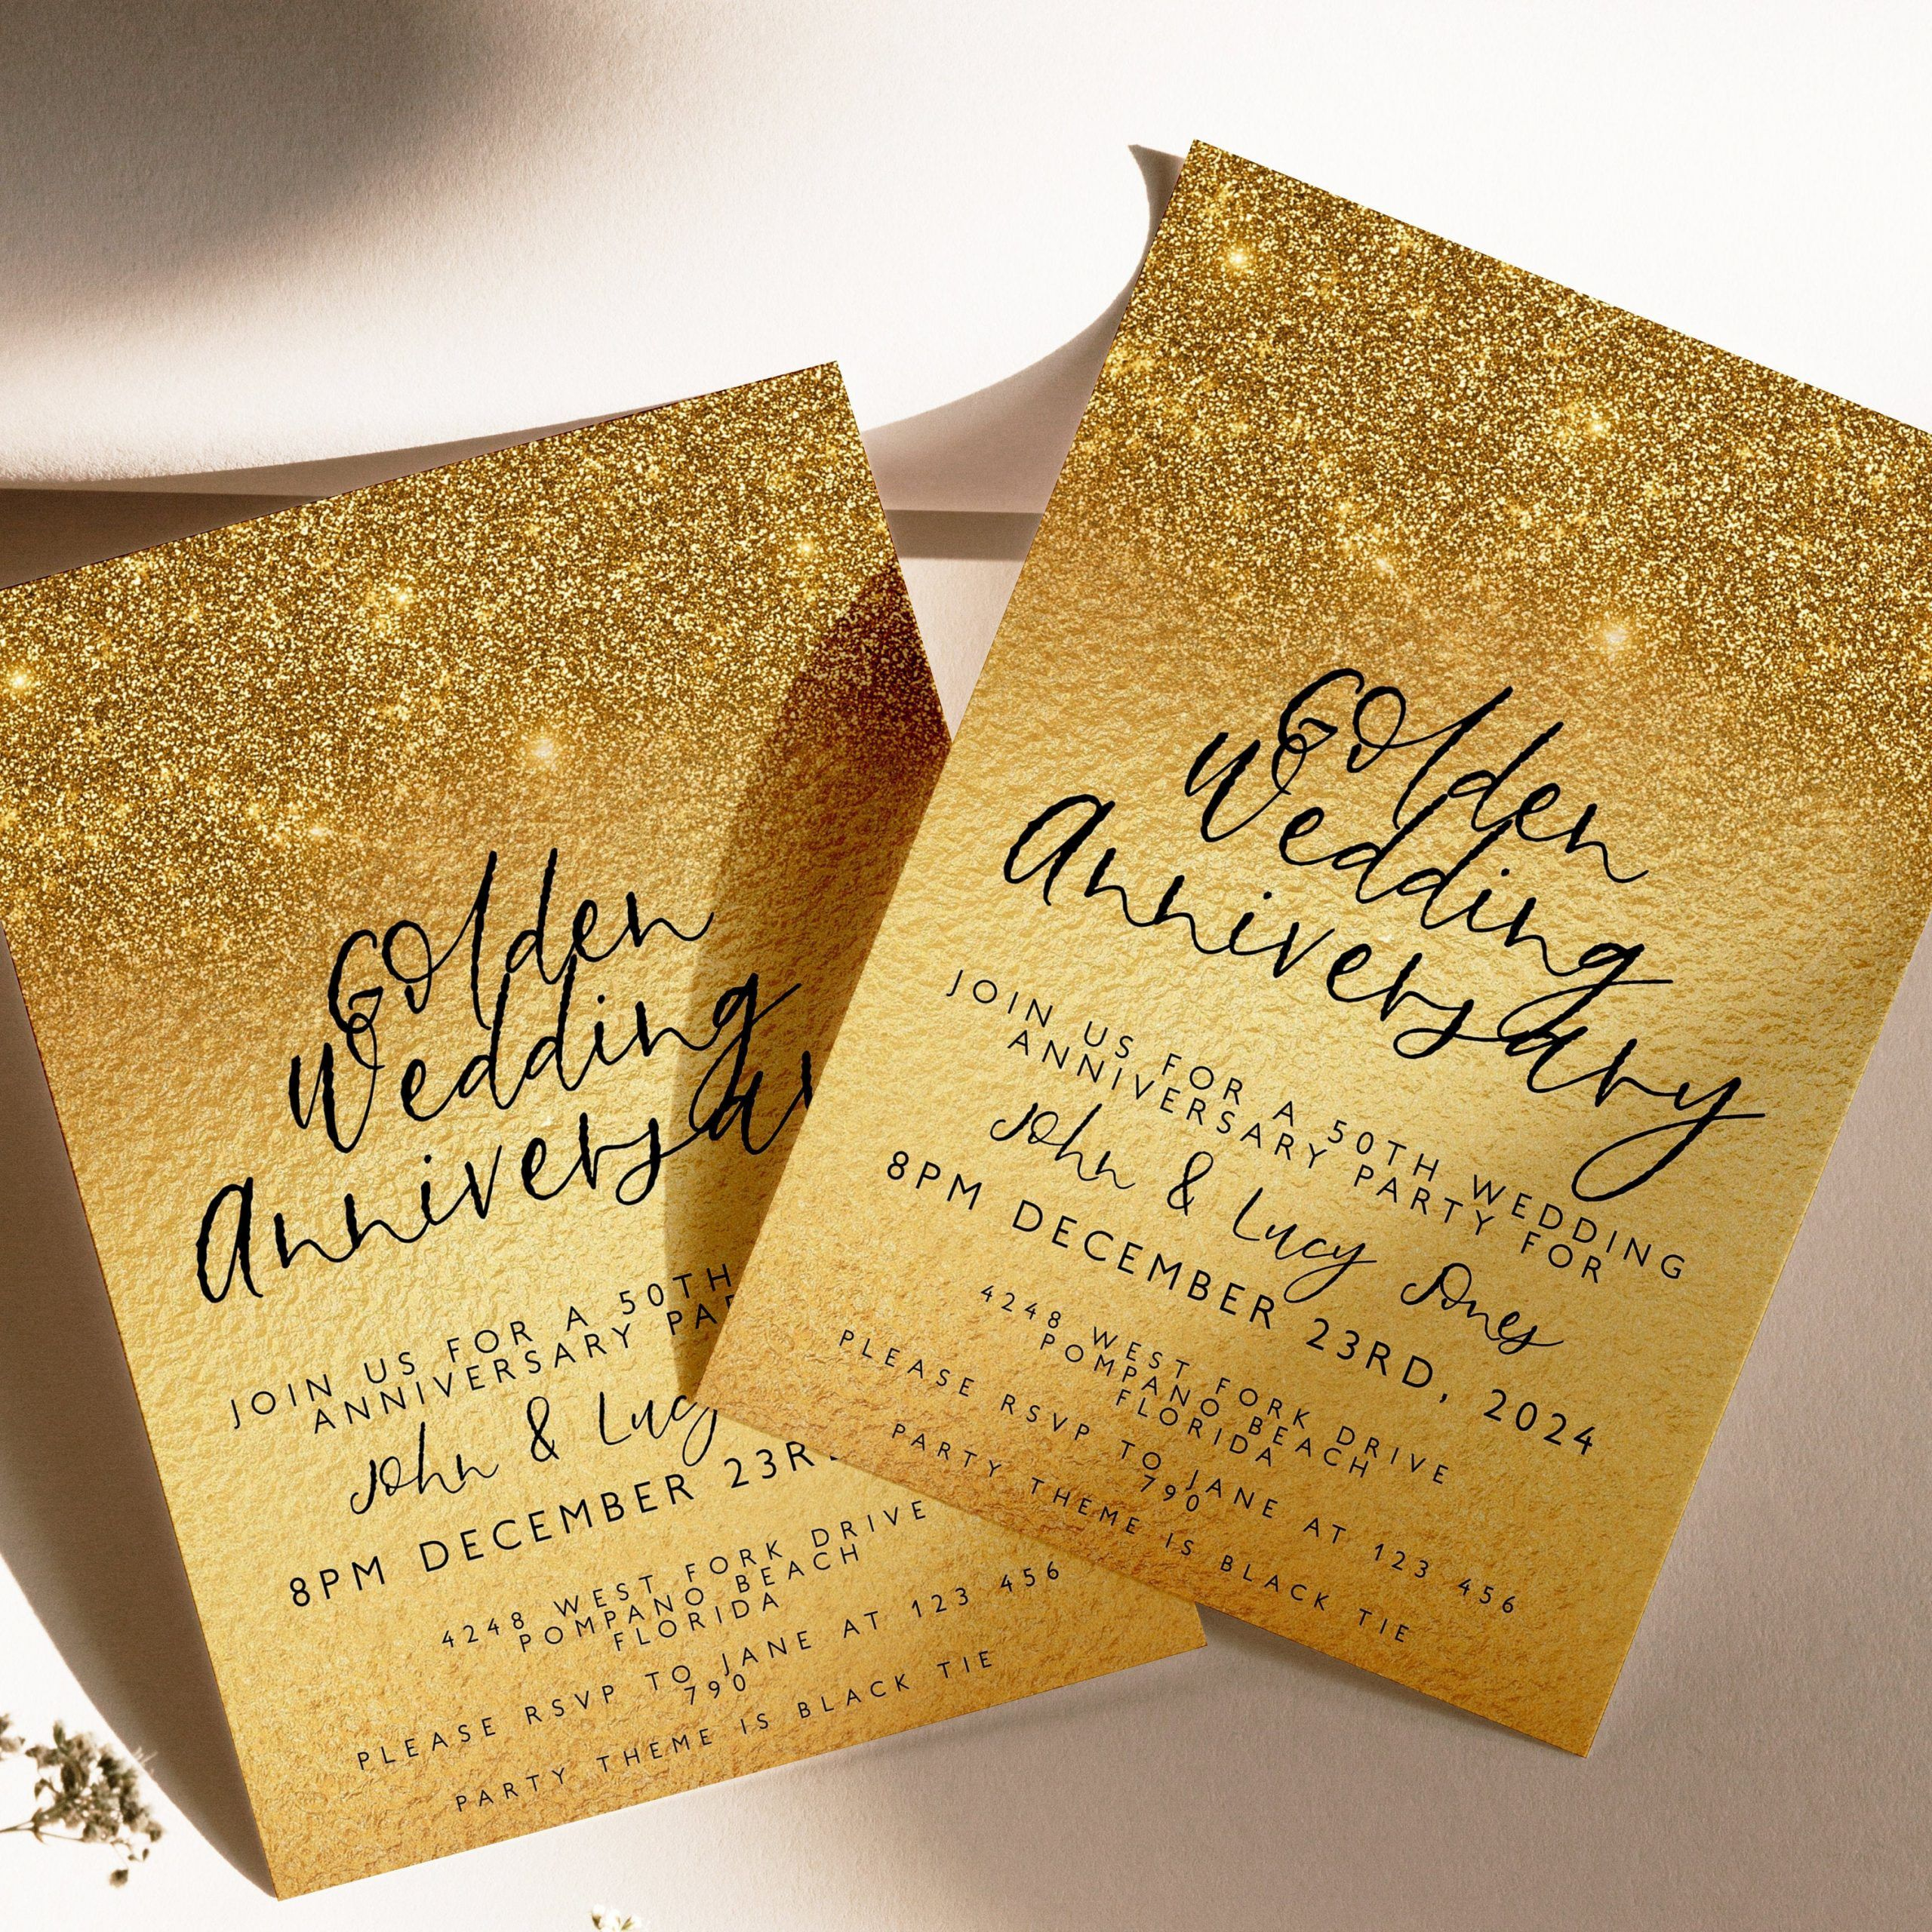 000 Exceptional 50th Anniversary Party Invitation Template Example  Templates Golden Wedding Uk Microsoft Word FreeFull